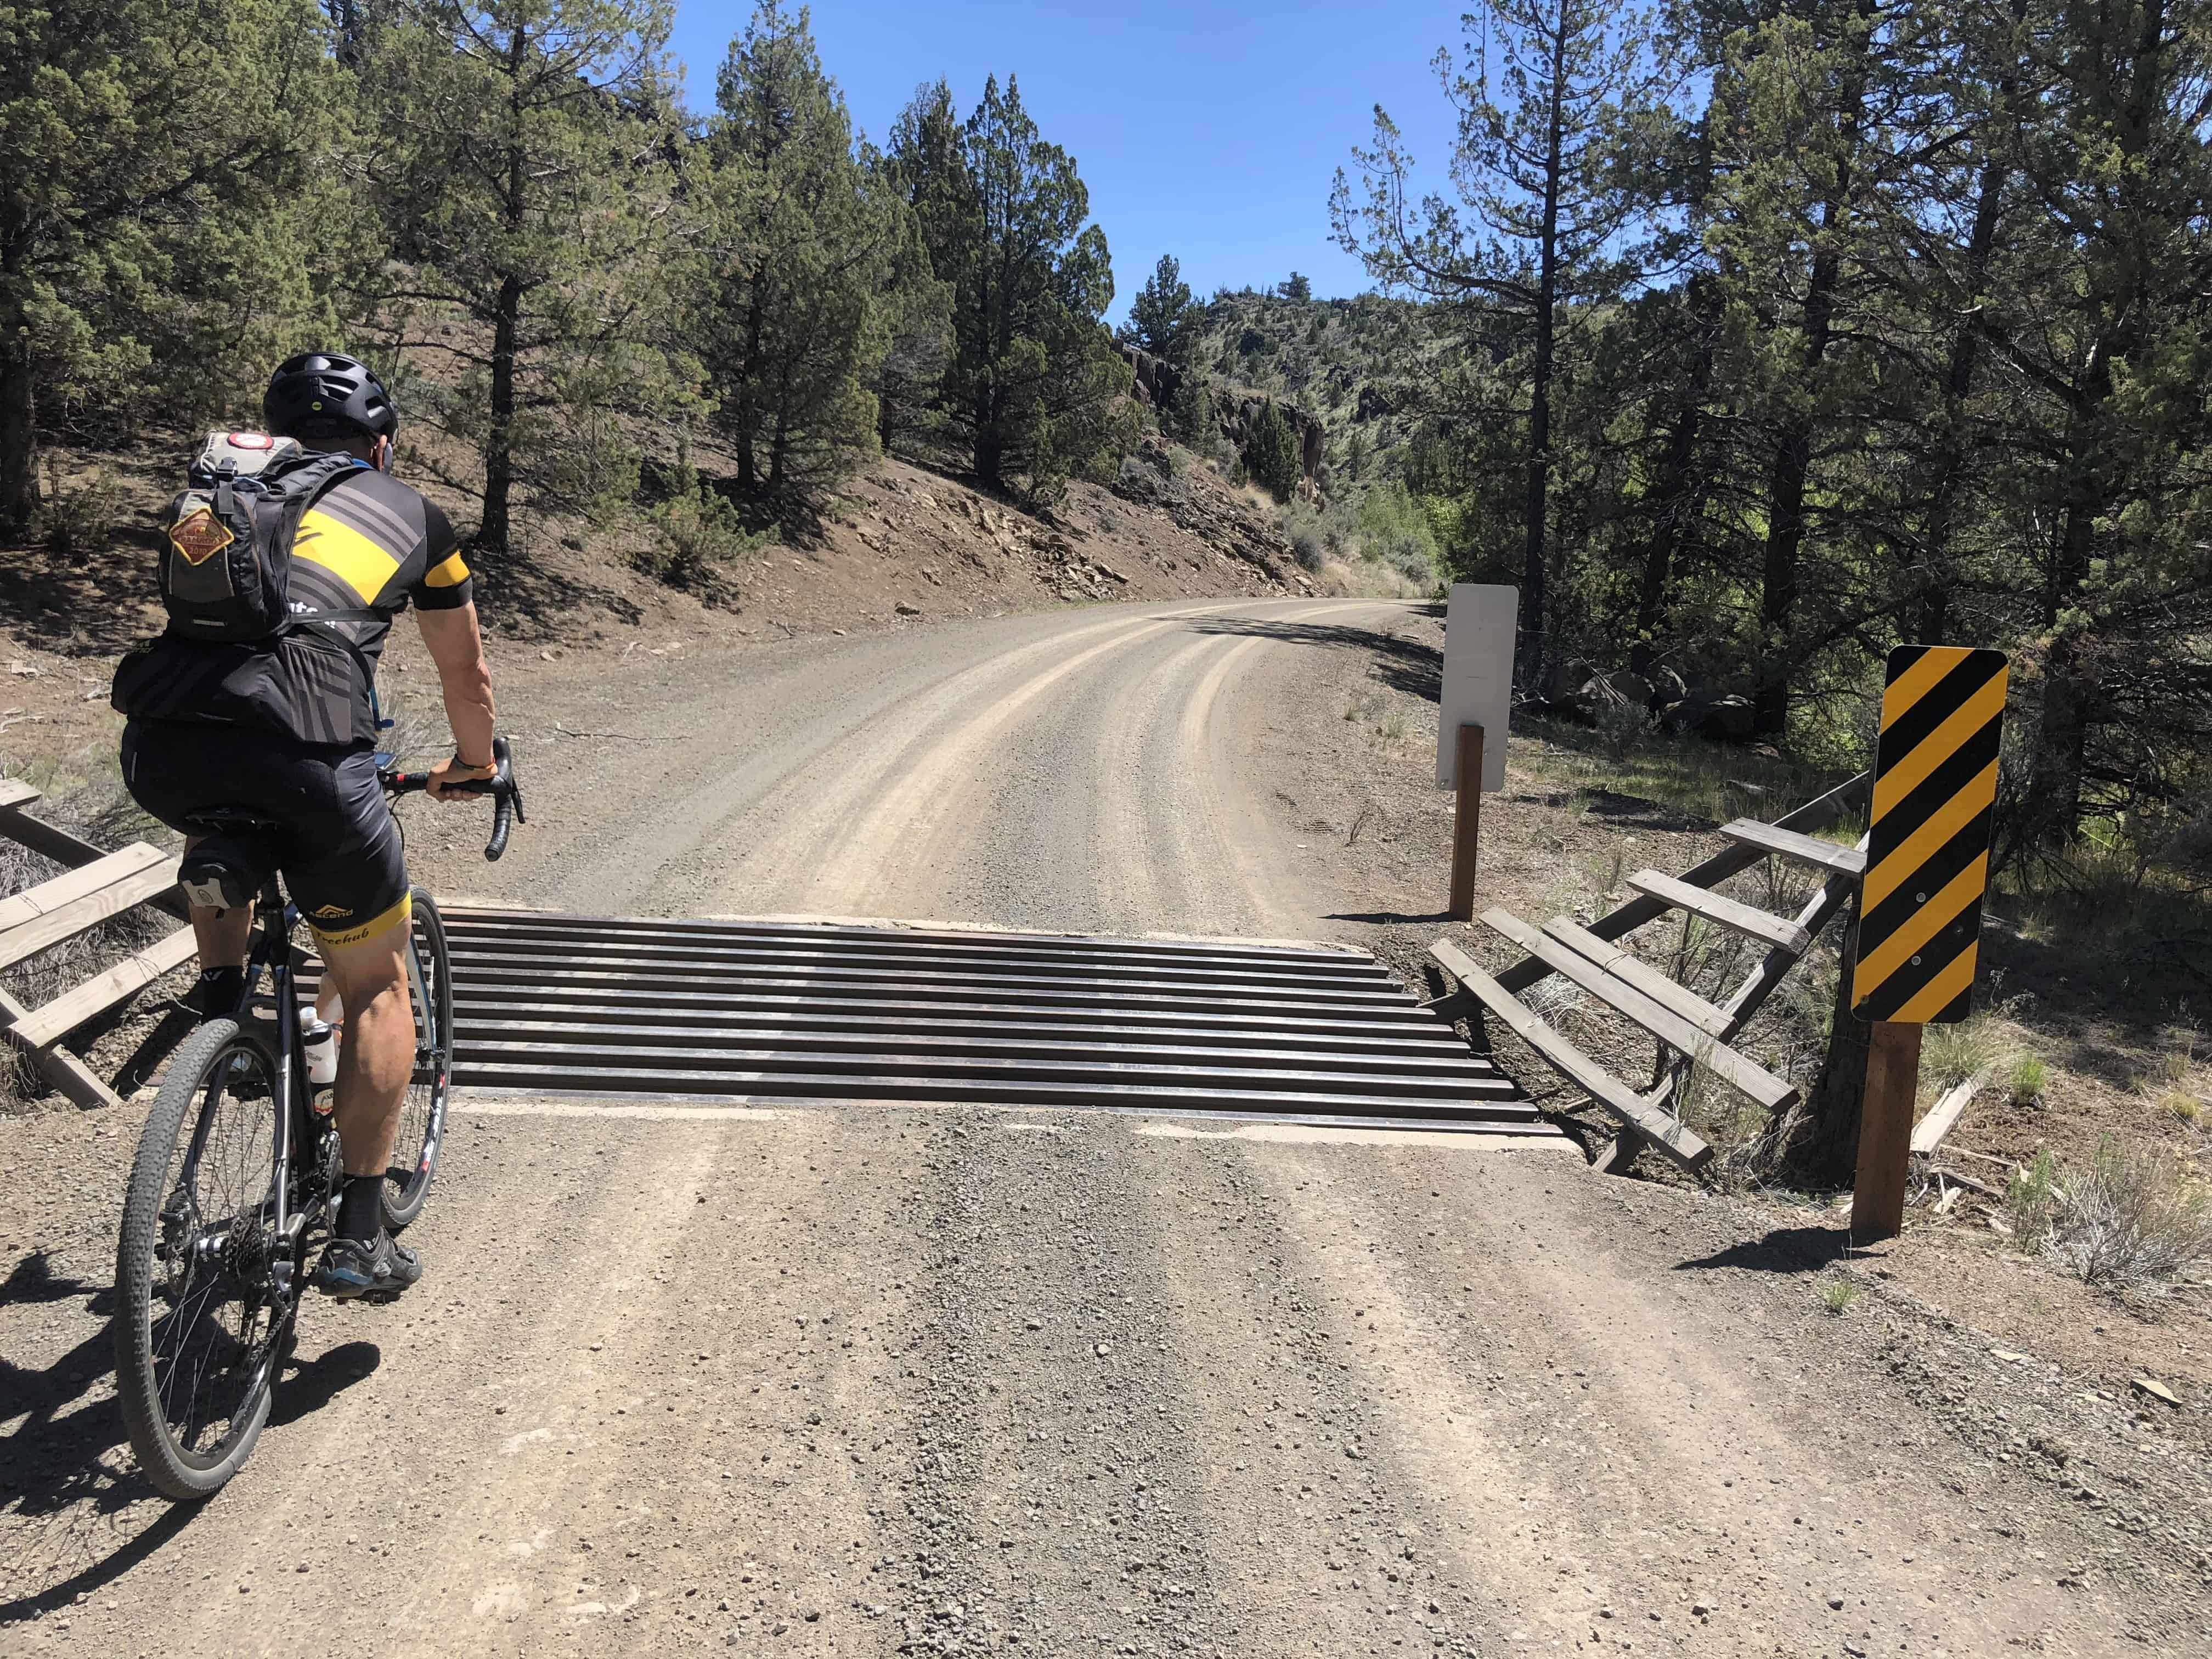 Gravel cyclist crossing over a cattle guard in Central Oregon.